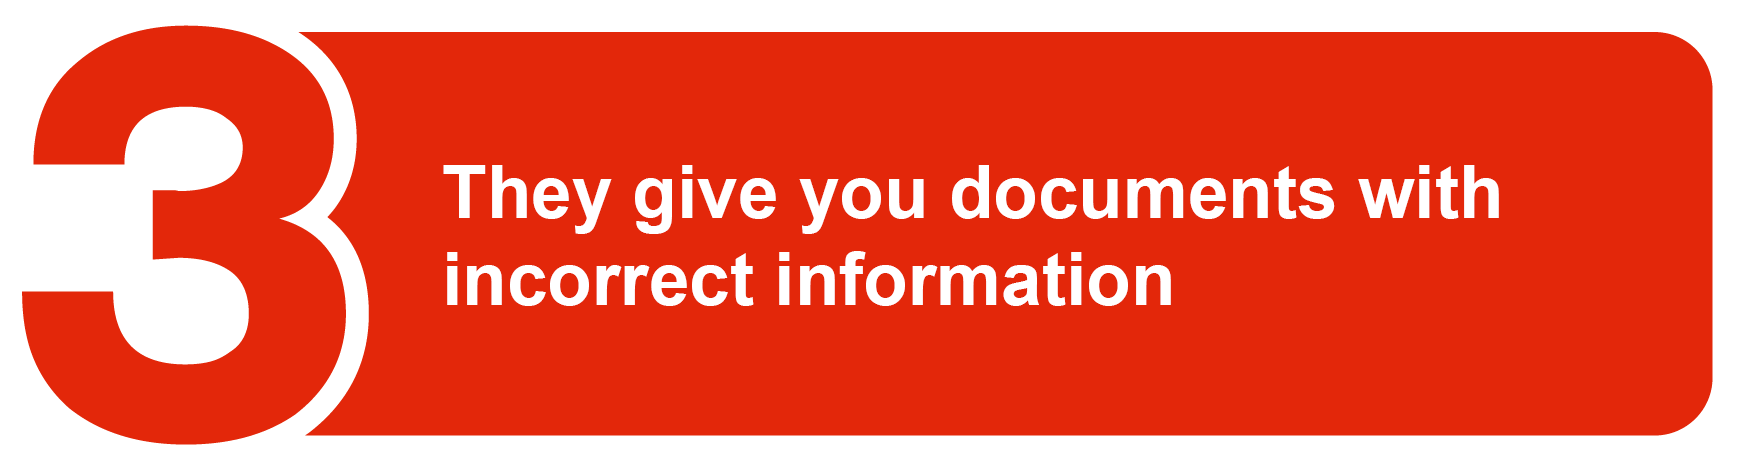 They give you documents with incorrect information